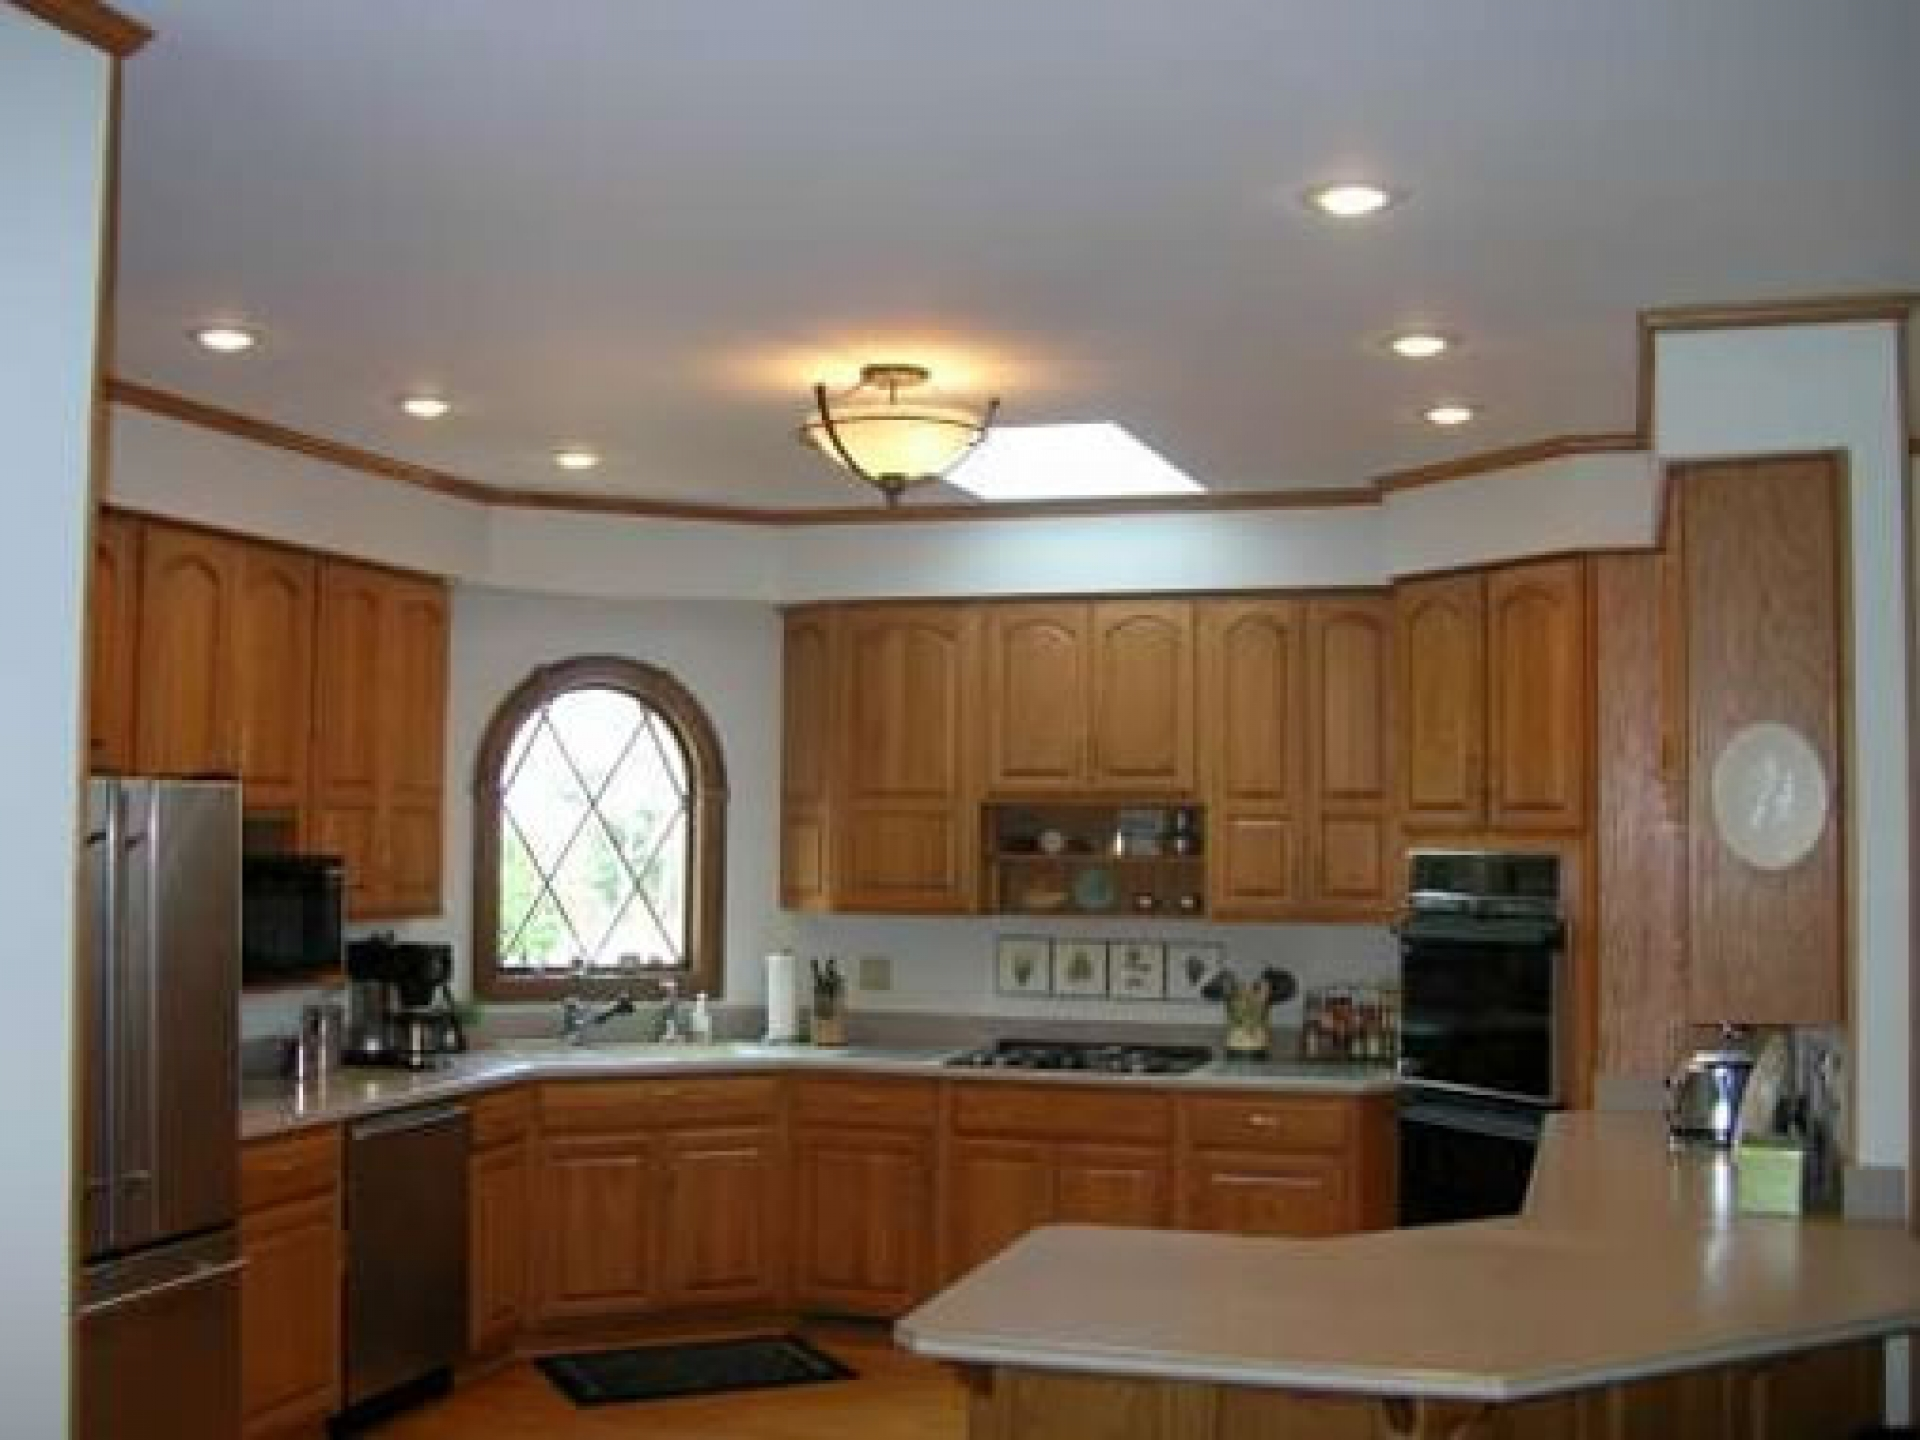 kitchen ceiling lights ... awesome kitchen ceiling light fixture photos amazing design kitchen  ceiling light RYMSLYF